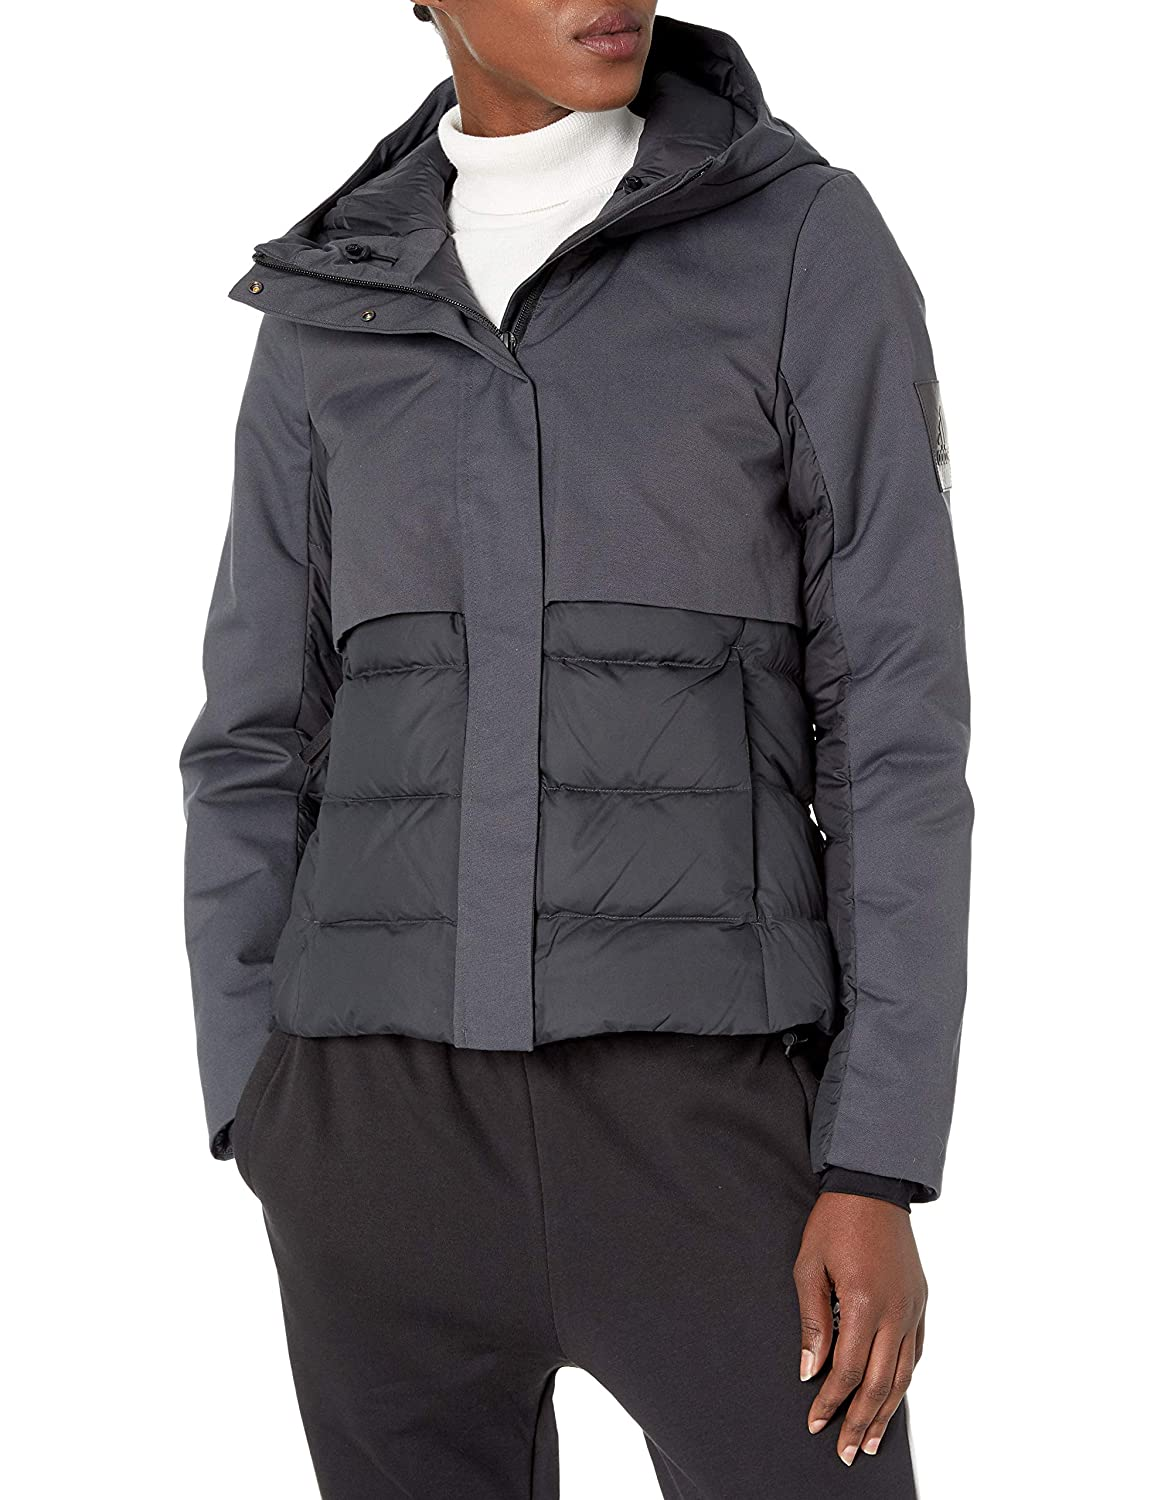 Image of adidas outdoor Climawarm Jacket Down & Down Alternative